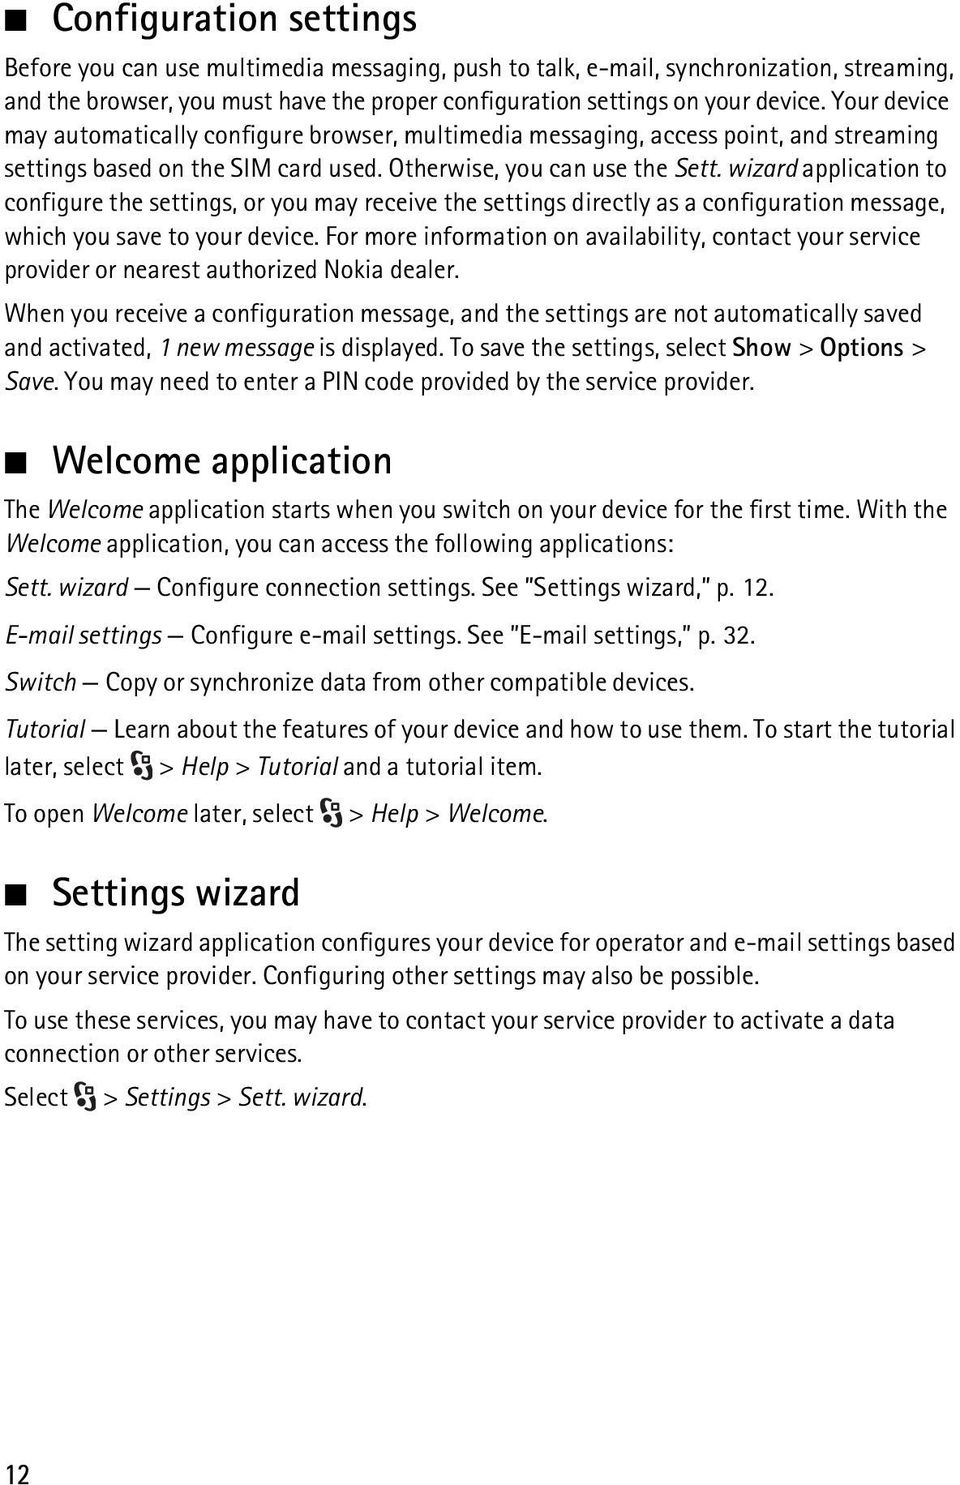 wizard application to configure the settings, or you may receive the settings directly as a configuration message, which you save to your device.